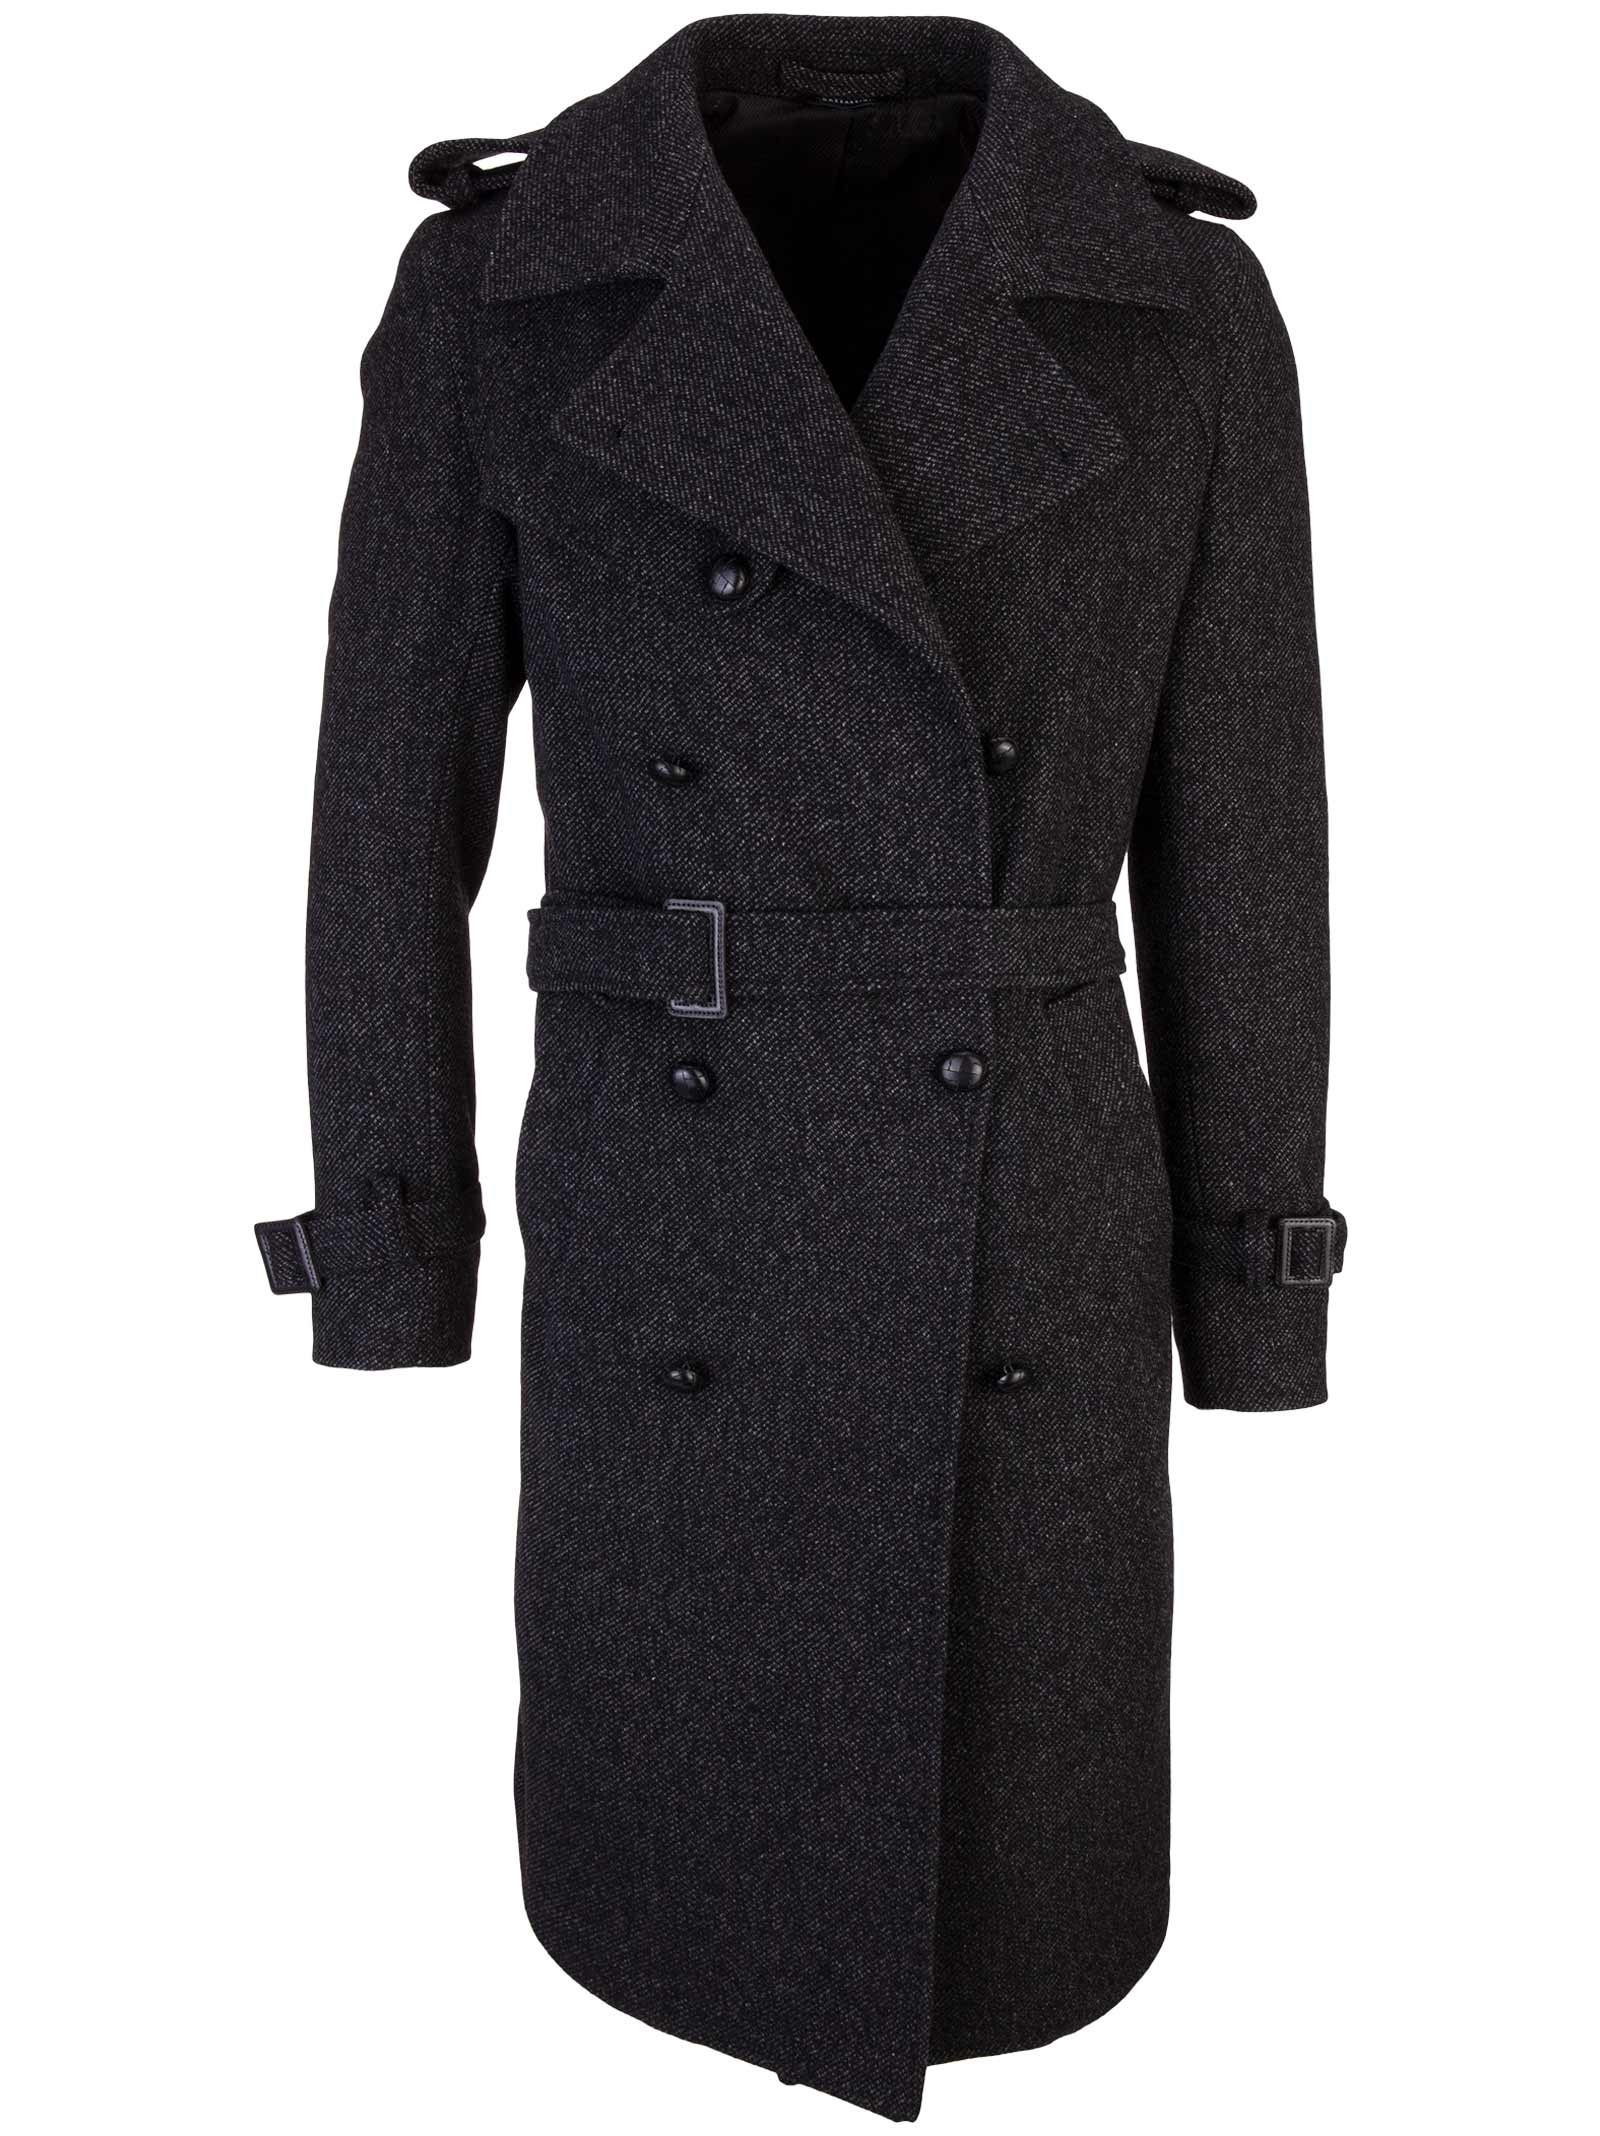 Gazzarrini trench coat